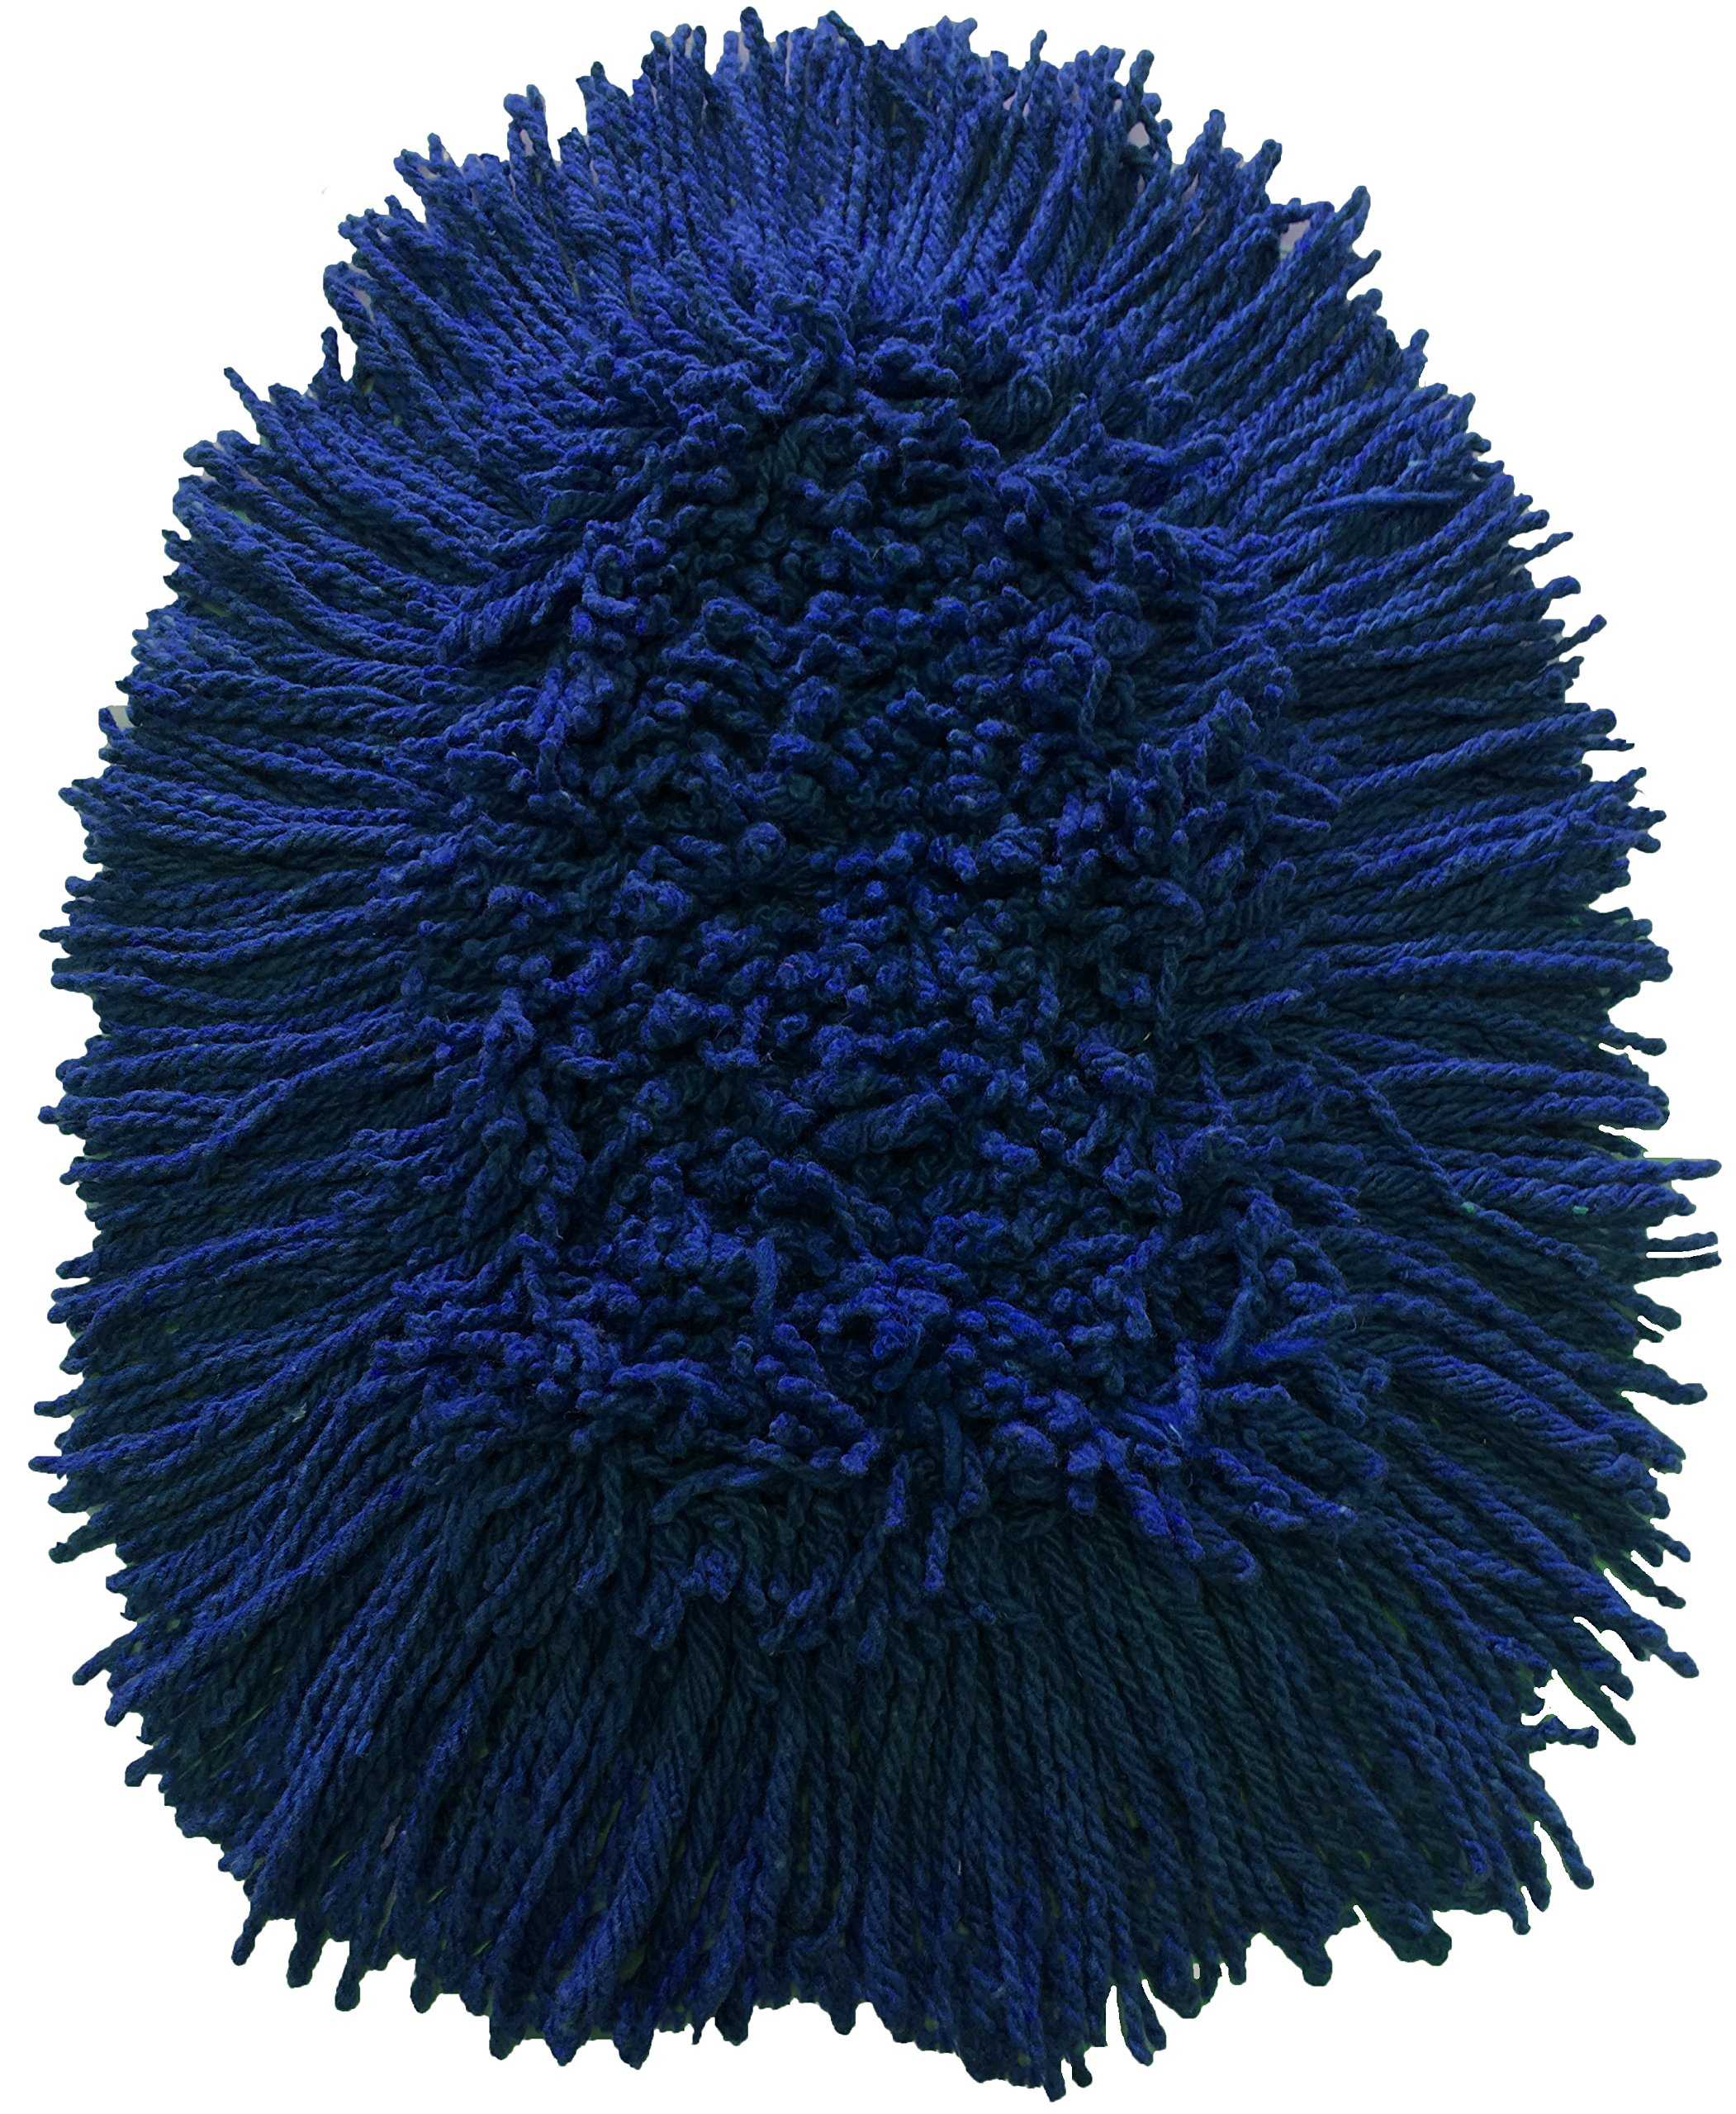 Triangle Dust Mop Heads-6 Pack-Blue by Direct Mop Sales, Inc. (Image #1)